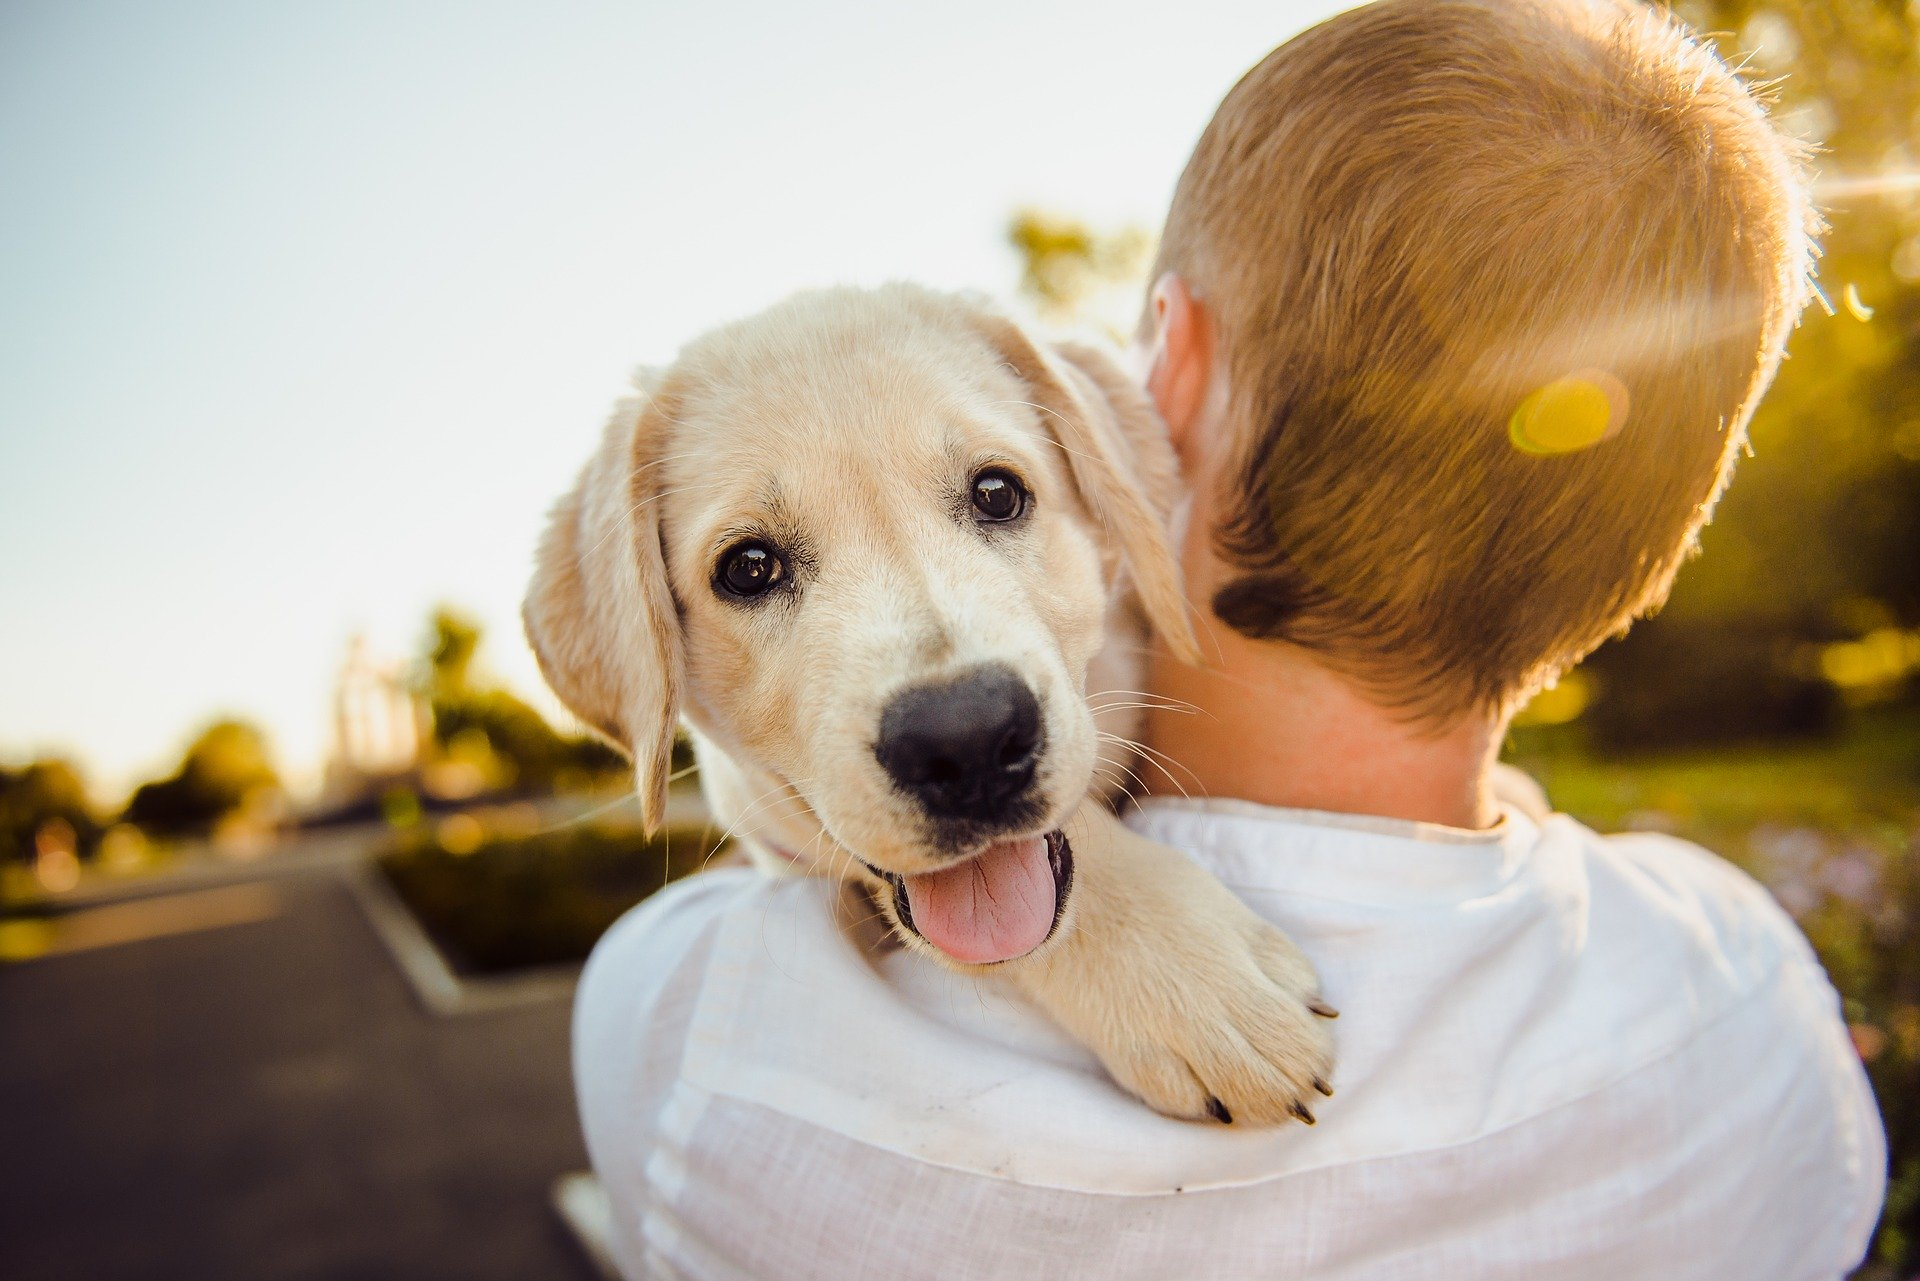 Boy holding dog - Socialize your puppy